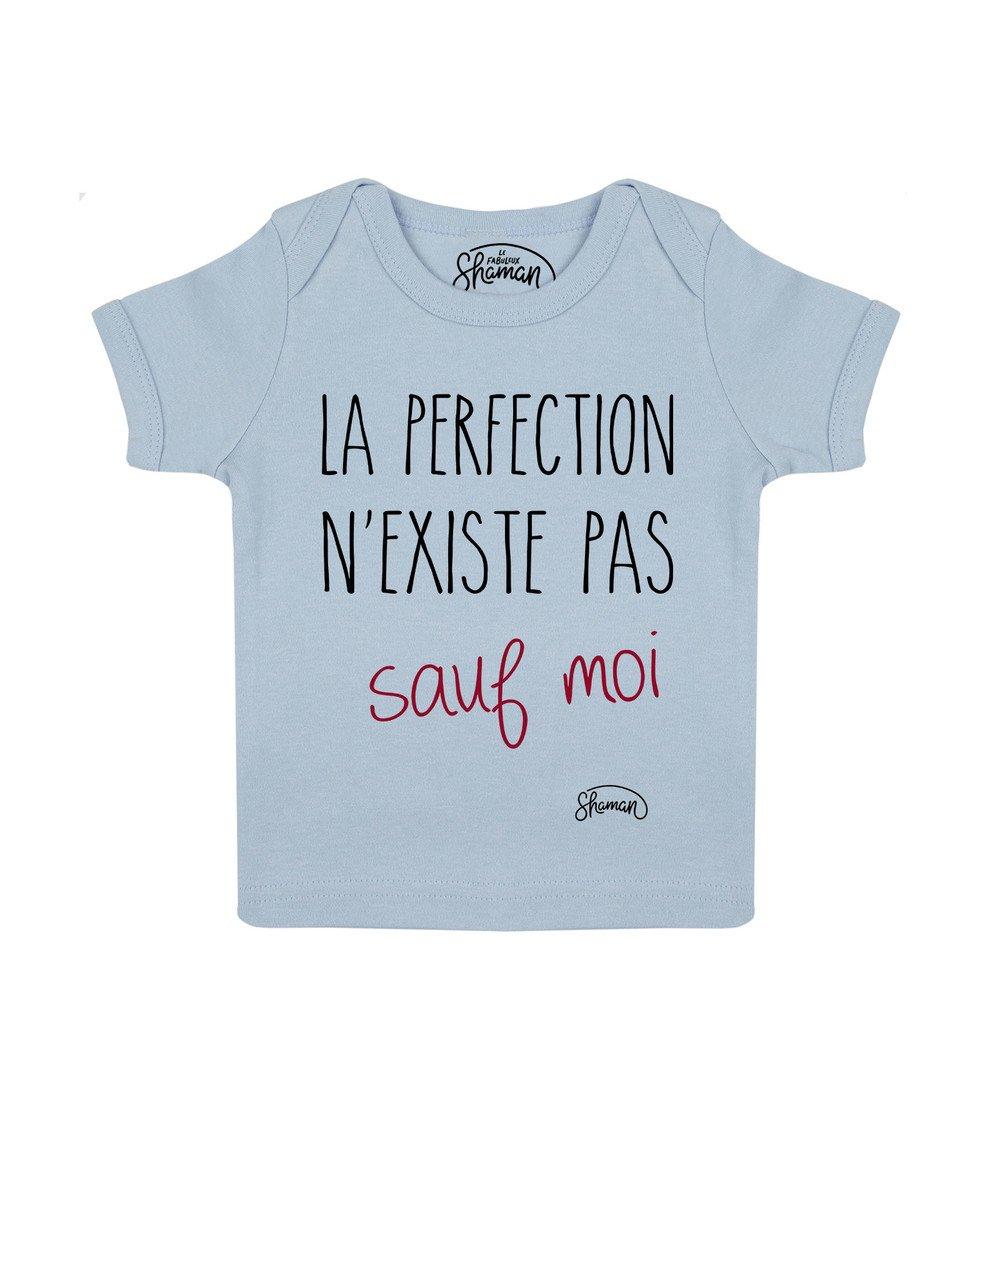 Tee shirt La perfection